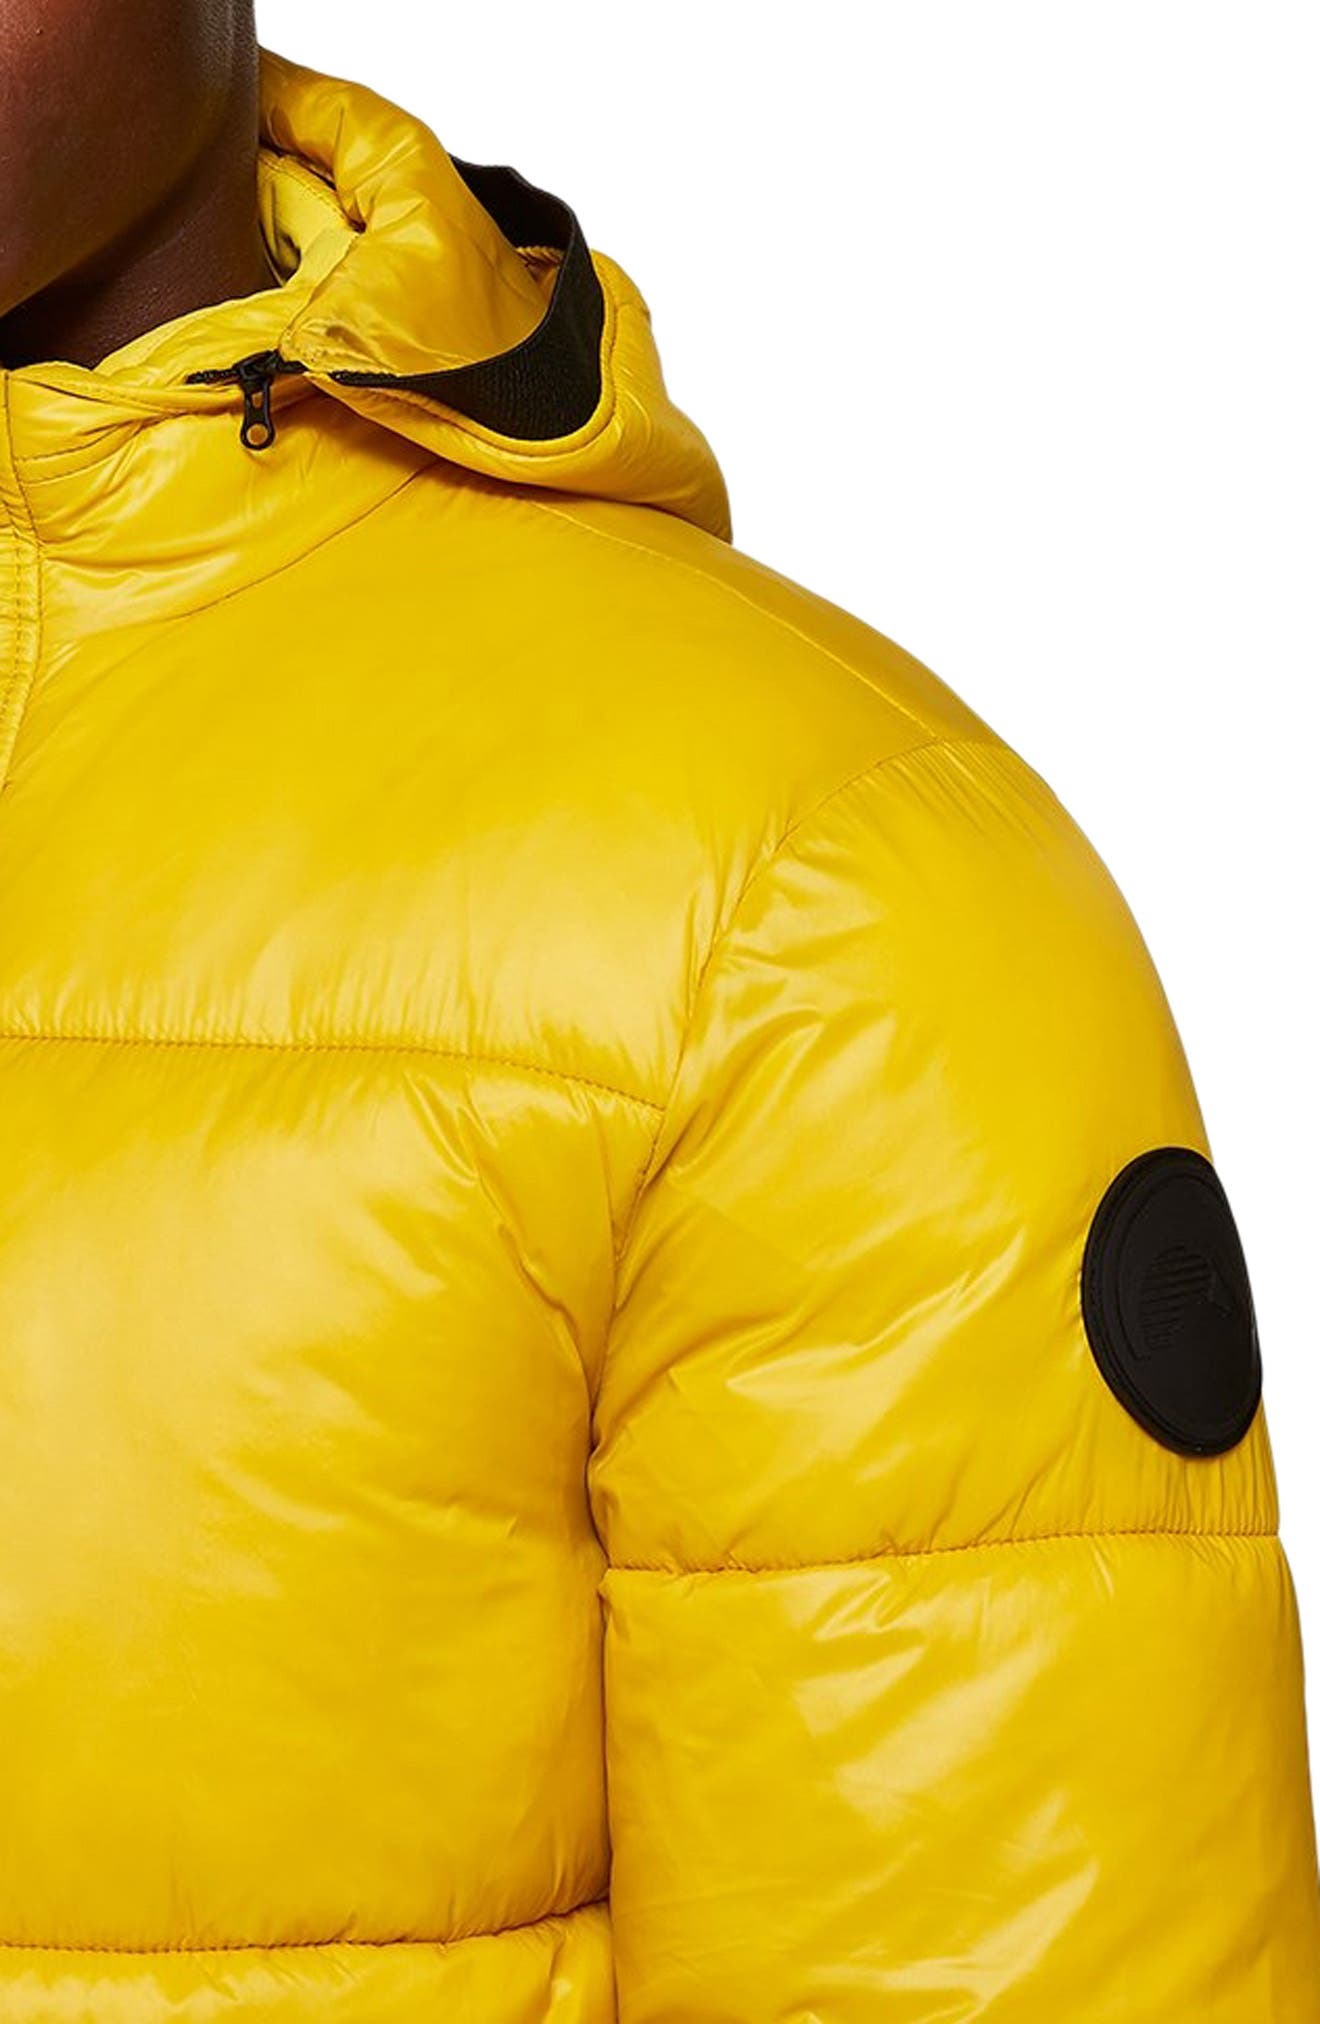 Capi Classic Fit Puffer Jacket,                             Alternate thumbnail 4, color,                             YELLOW